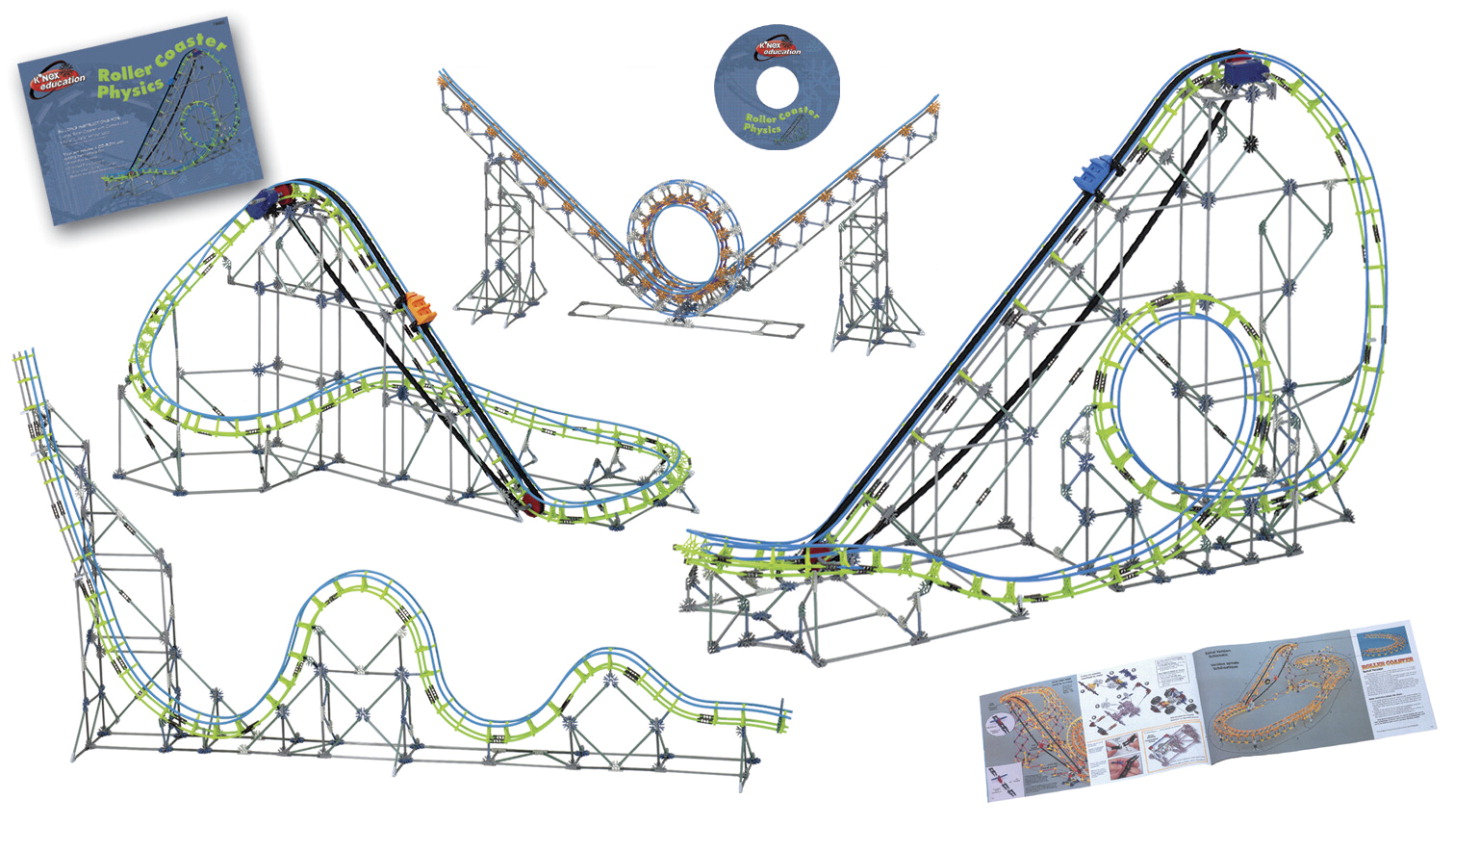 K NEX Roller Coaster Physics Construction Set - Set of 2,037